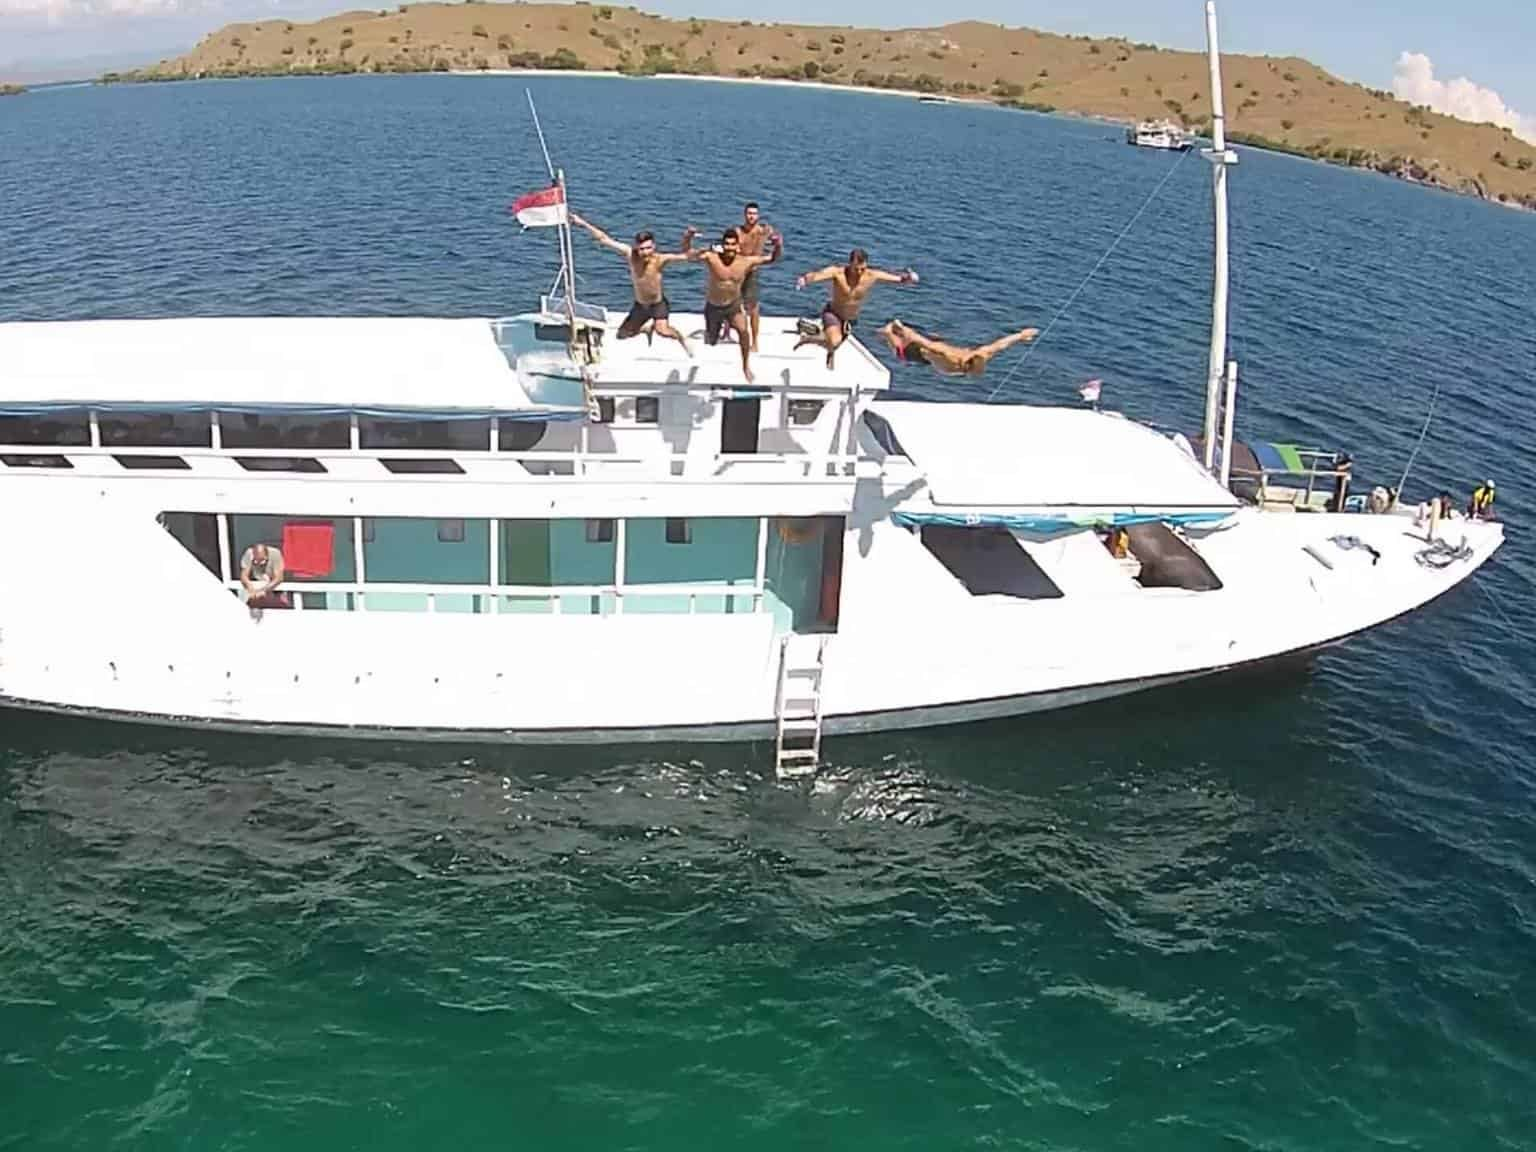 Lombok to Flores Boat Trip | 4 Days | LOMBOK, INDONESIA